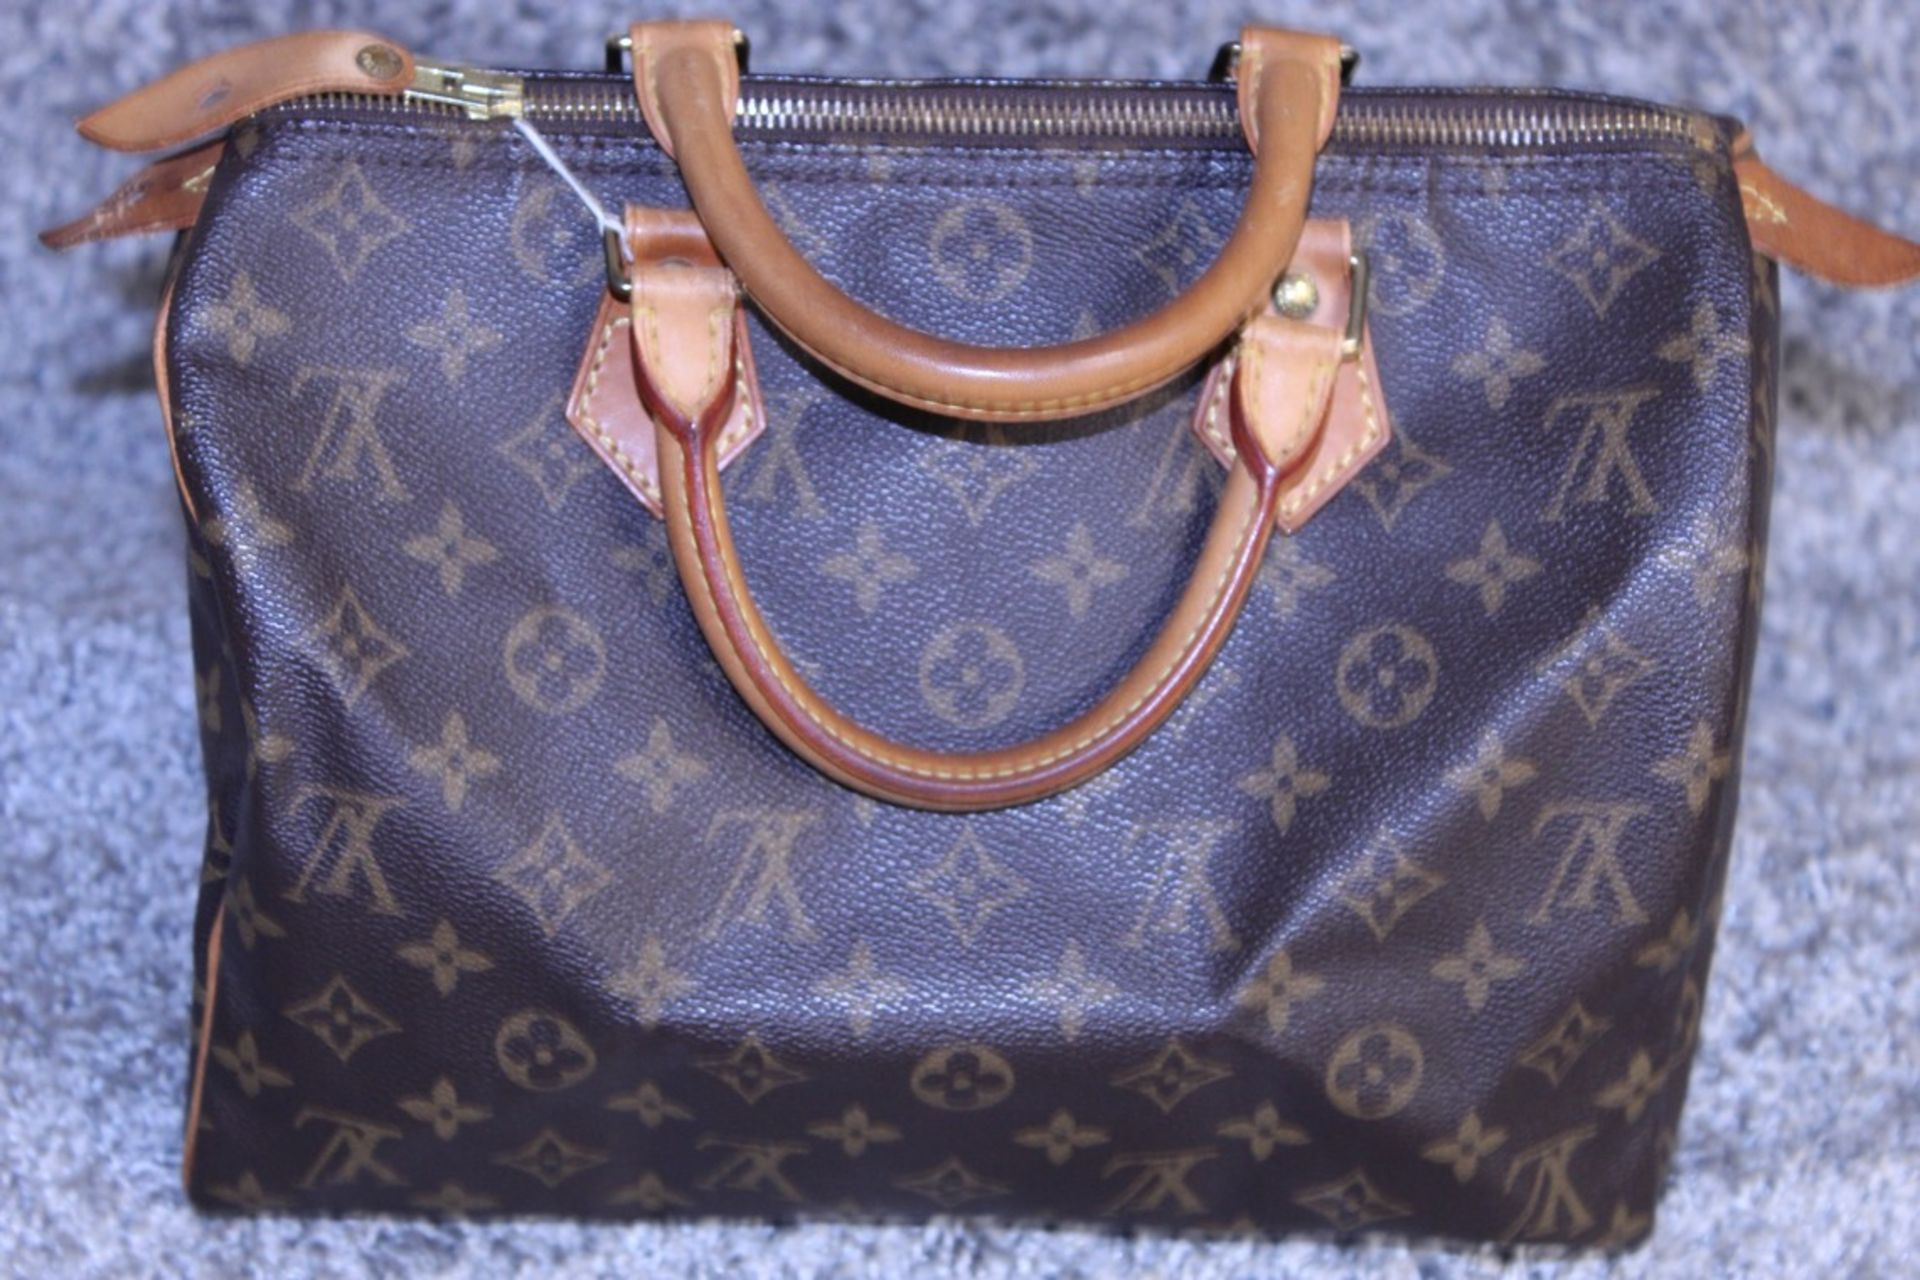 RRP £1,100.00 Made From Classic Monogram Canvas, The Speedy 35 Is A Stylish Handbag For Both - Image 2 of 6